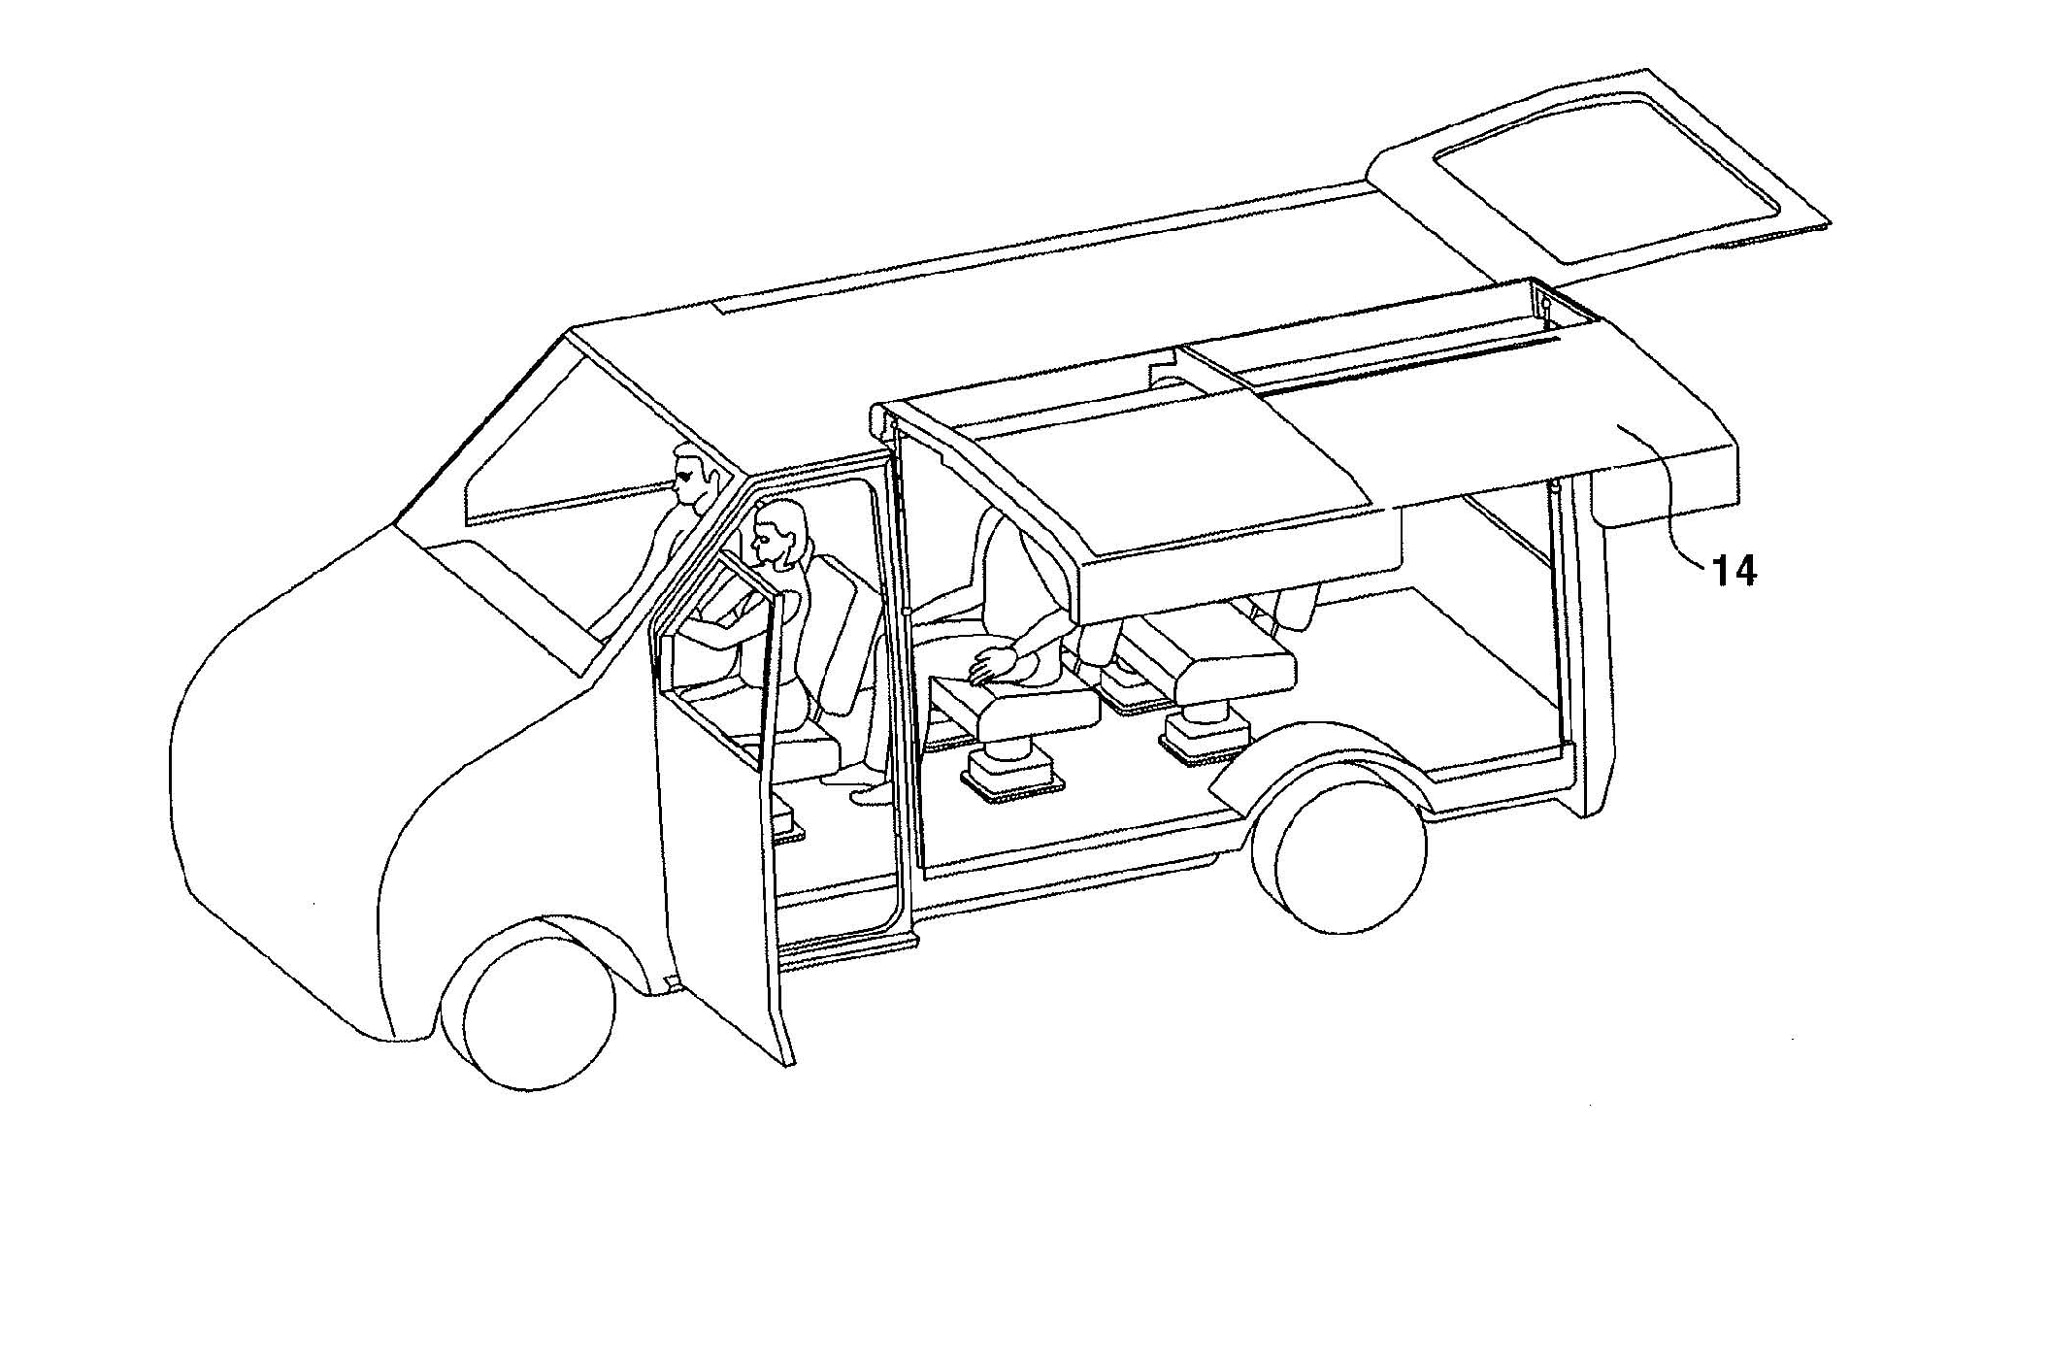 Hyundai Patent Images Show Sliding Gullwing Door For Camping